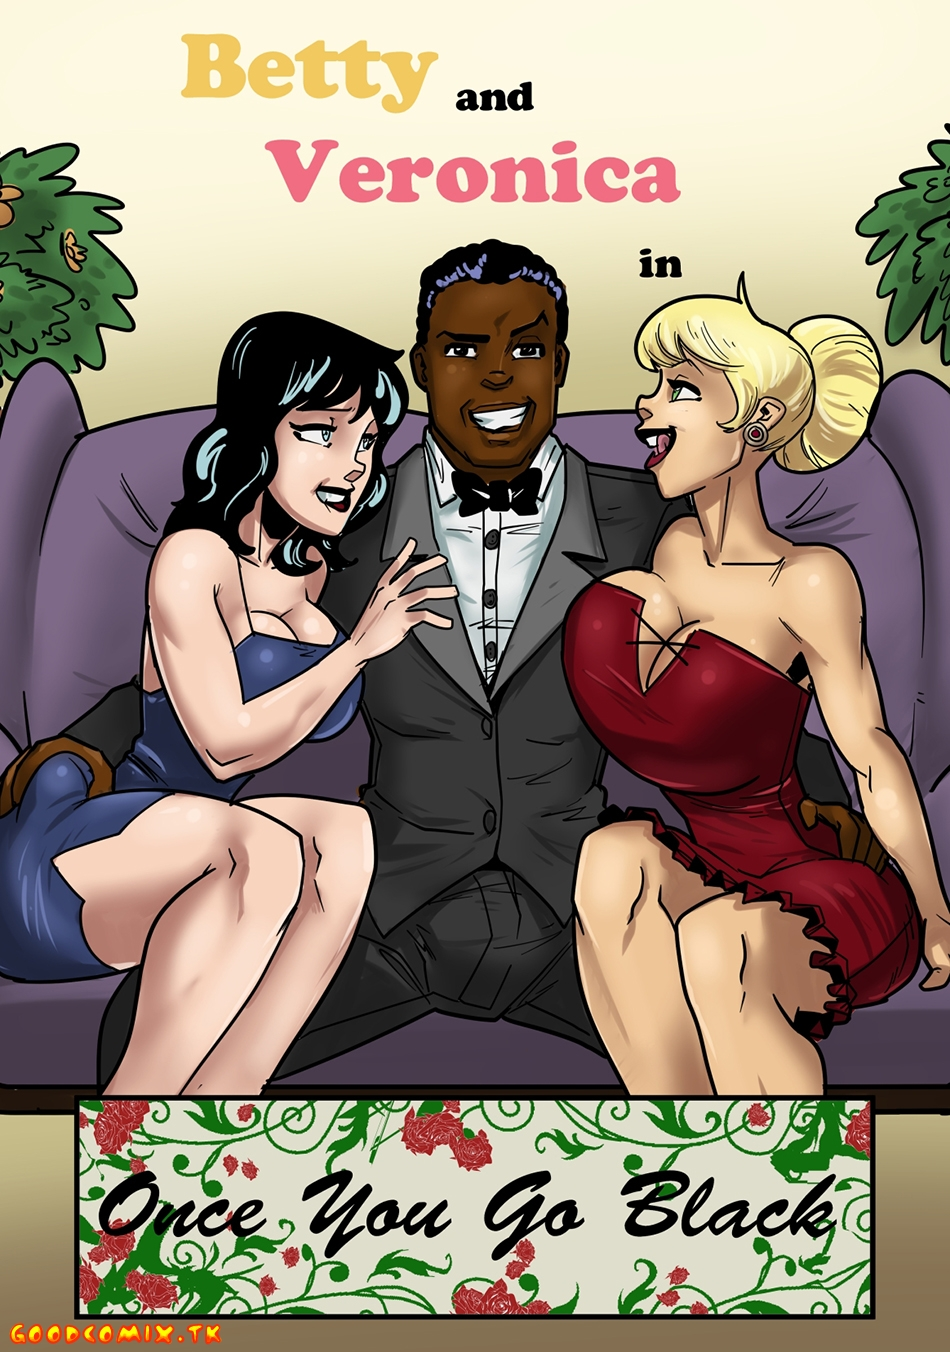 Goodcomix.tk The Archie - [KennyComix][Rabies T Lagomorph (Entropy)] - Betty and Veronica Once You Go Black